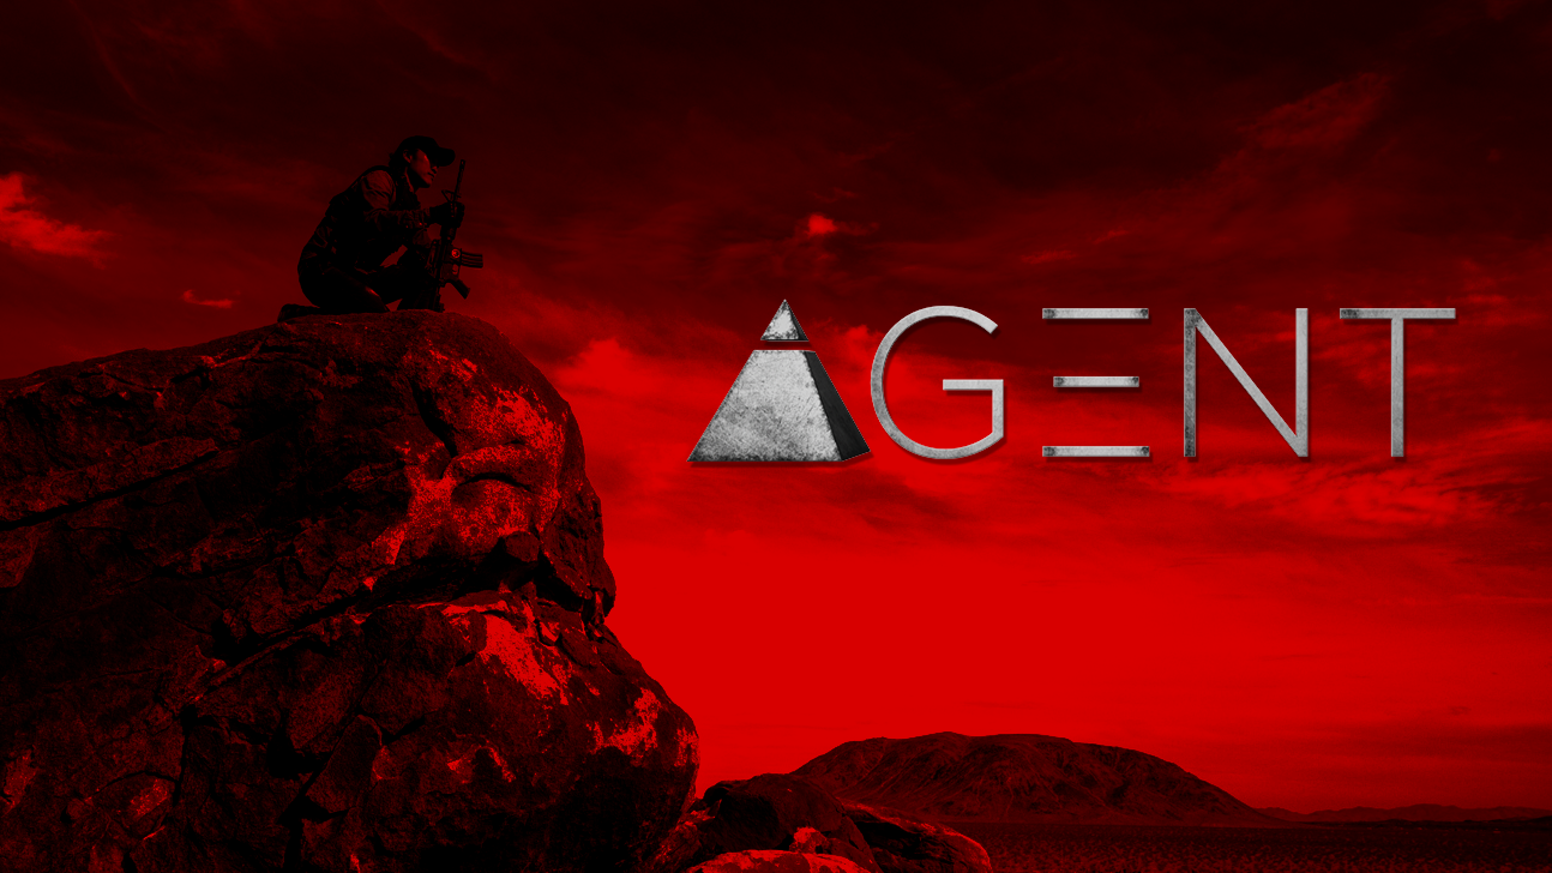 AGENT THE MOVIE: A SCI-FI ACTION THRILLER FEATURE FILM by Derek Ting